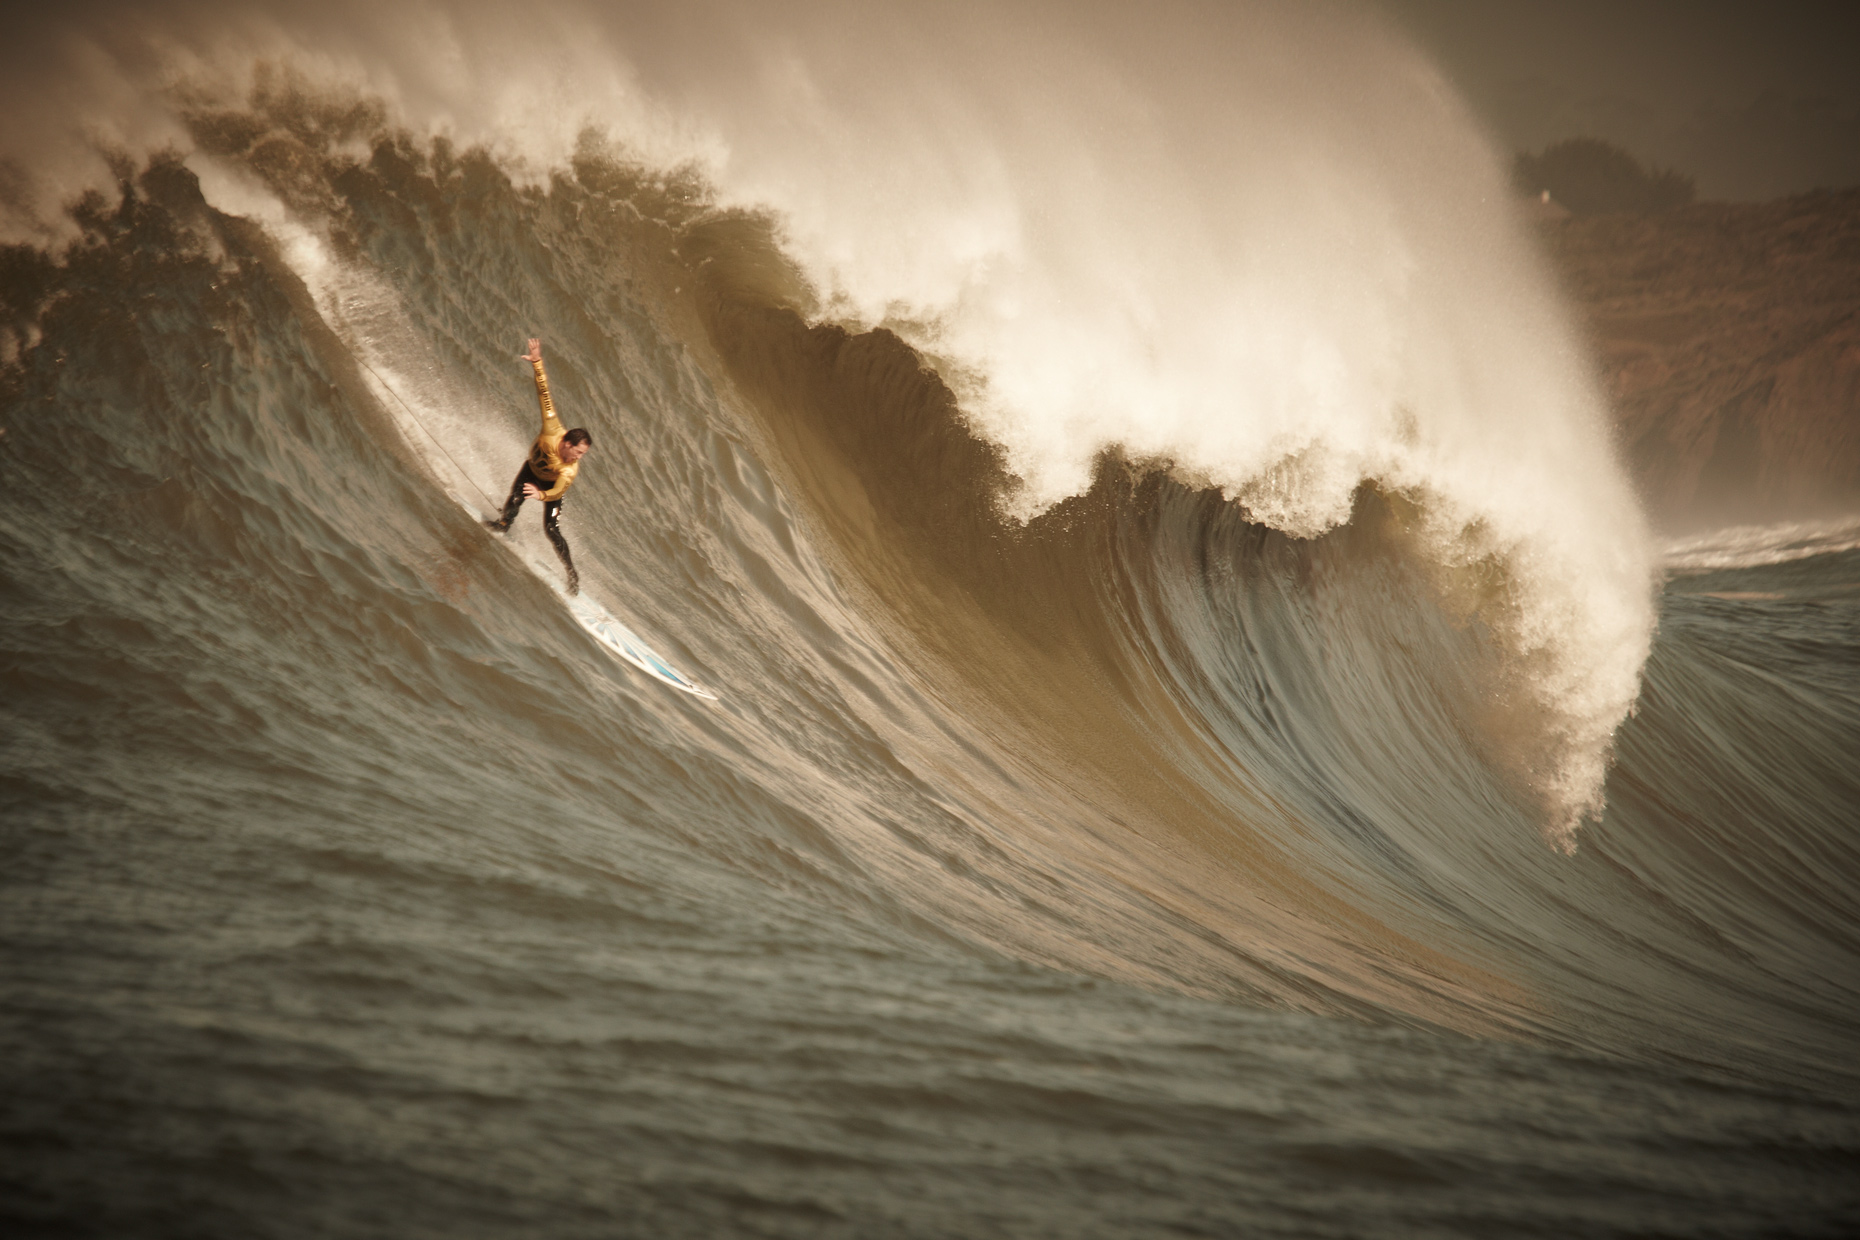 Projects Action Photography Derek Israelsen 009 Surfs Up